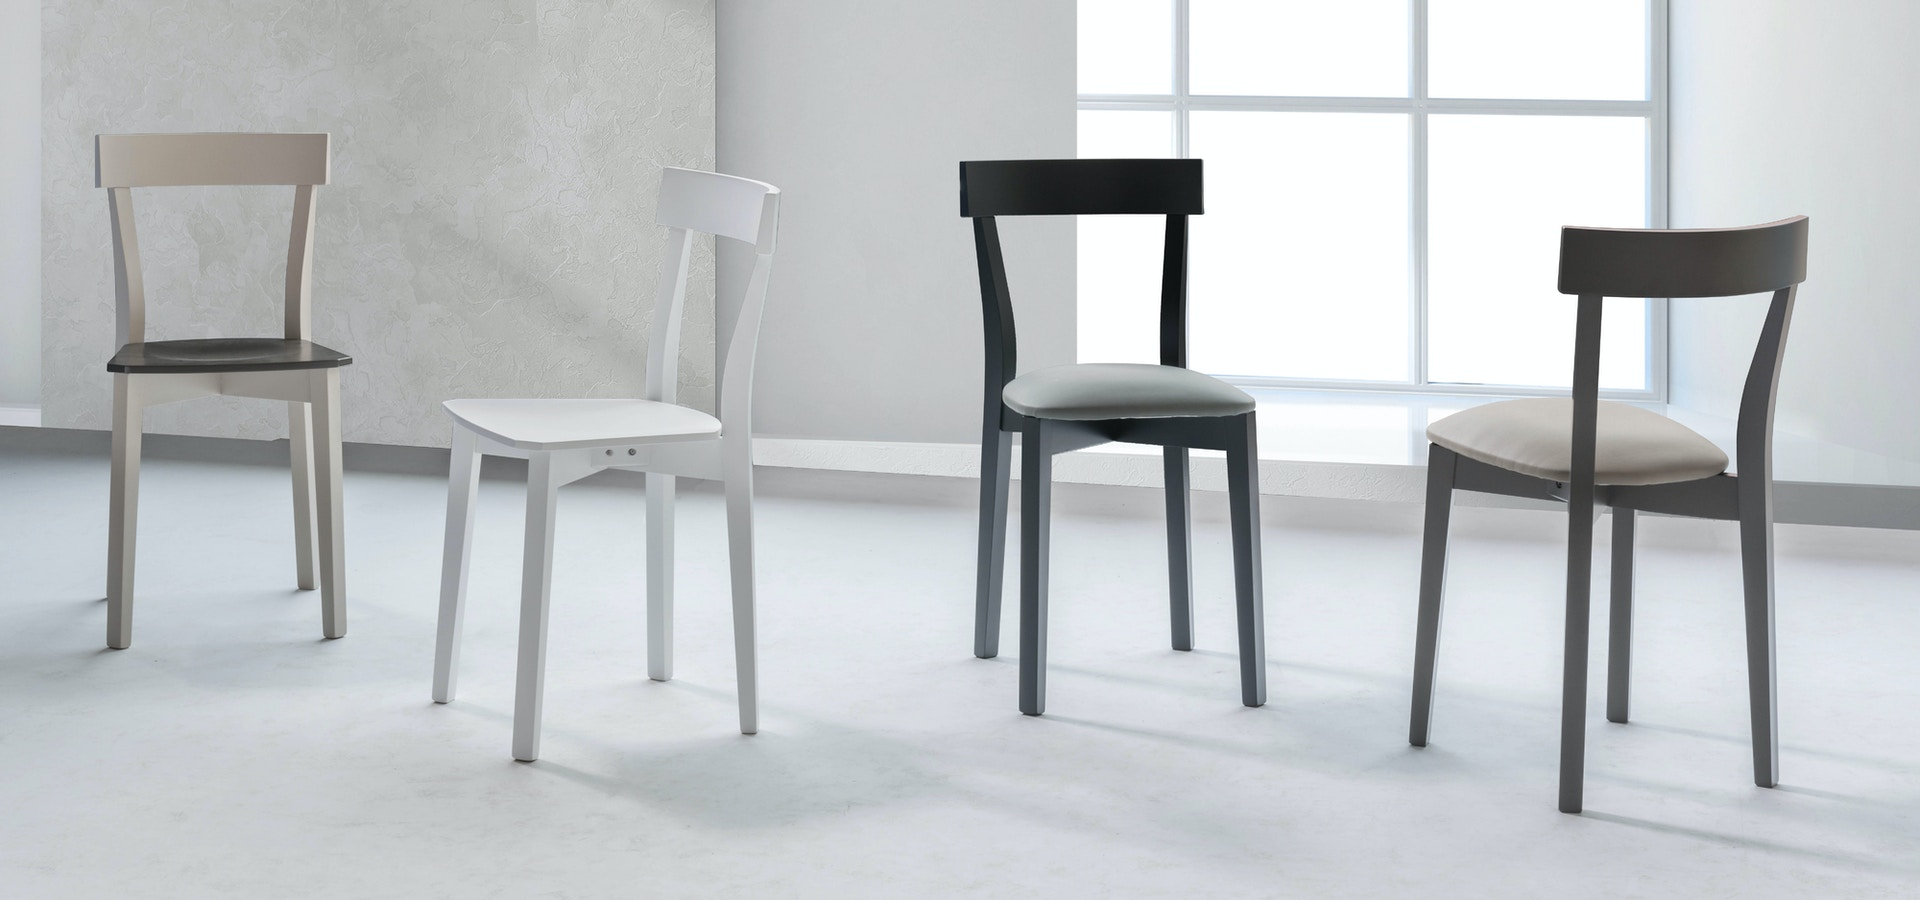 Chairs Stosa - Model Camelia 10065